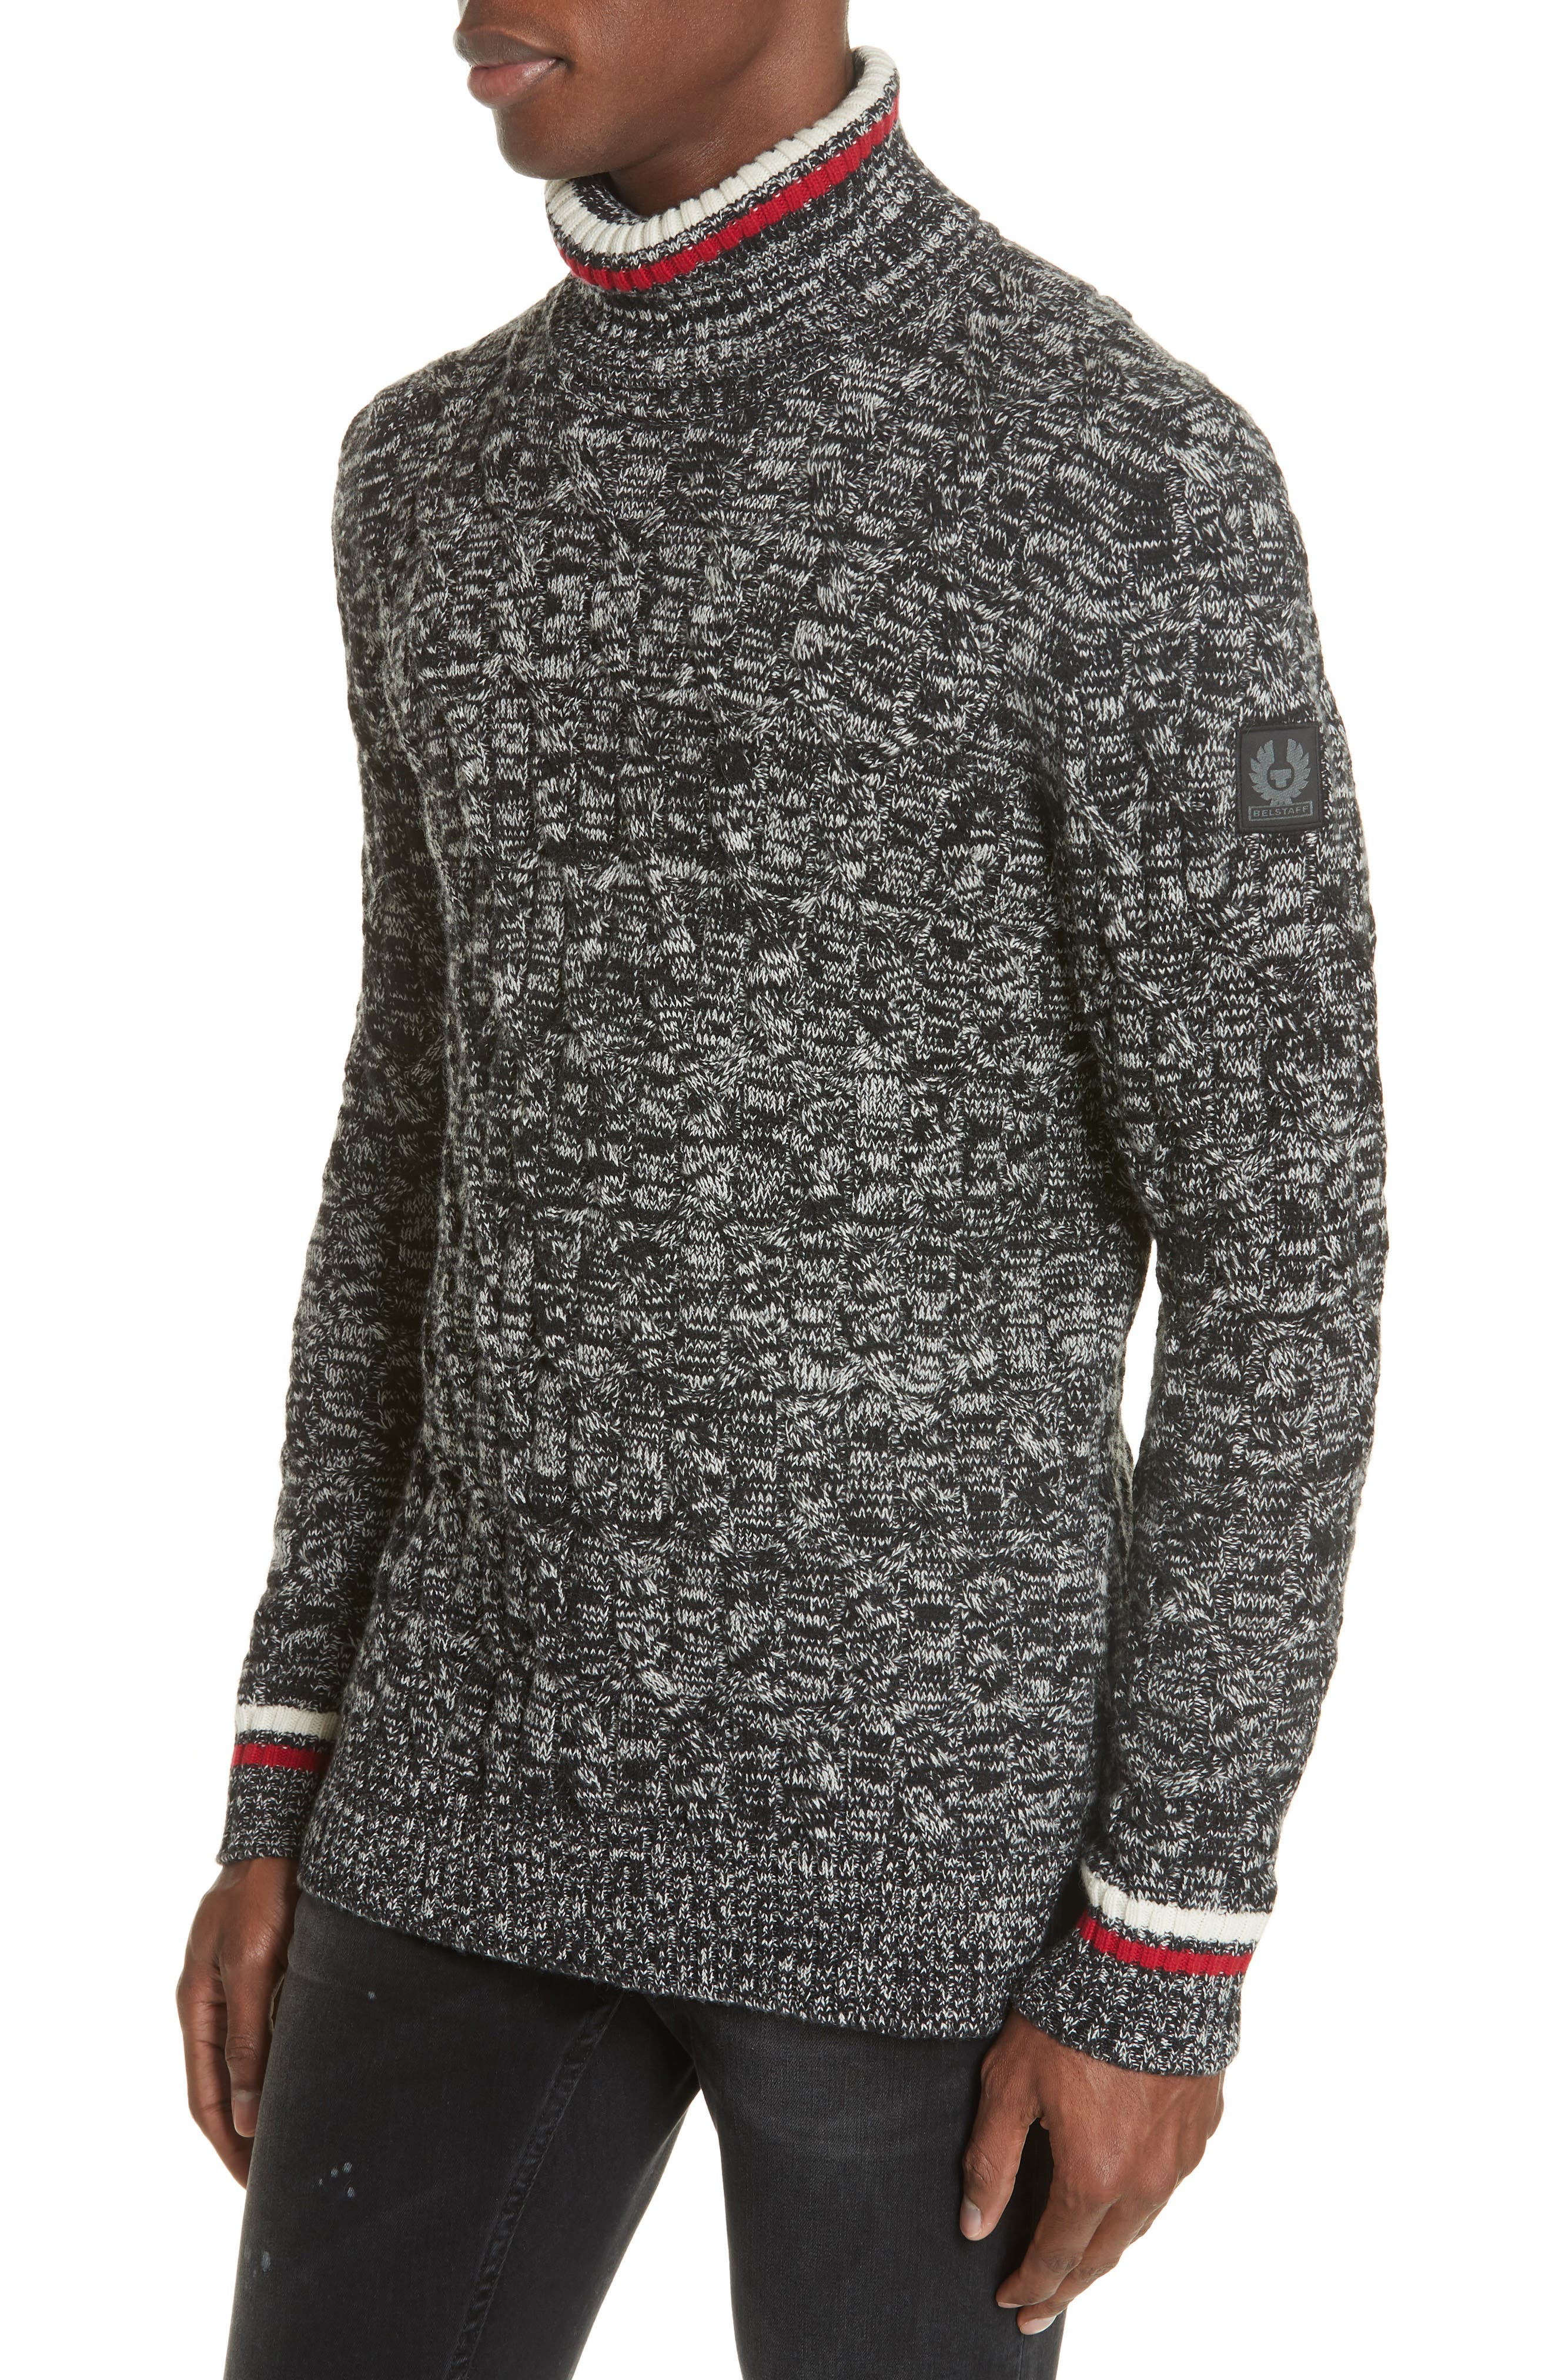 Howden Wool Turtleneck Sweater,                             Main thumbnail 1, color,                             BLACK